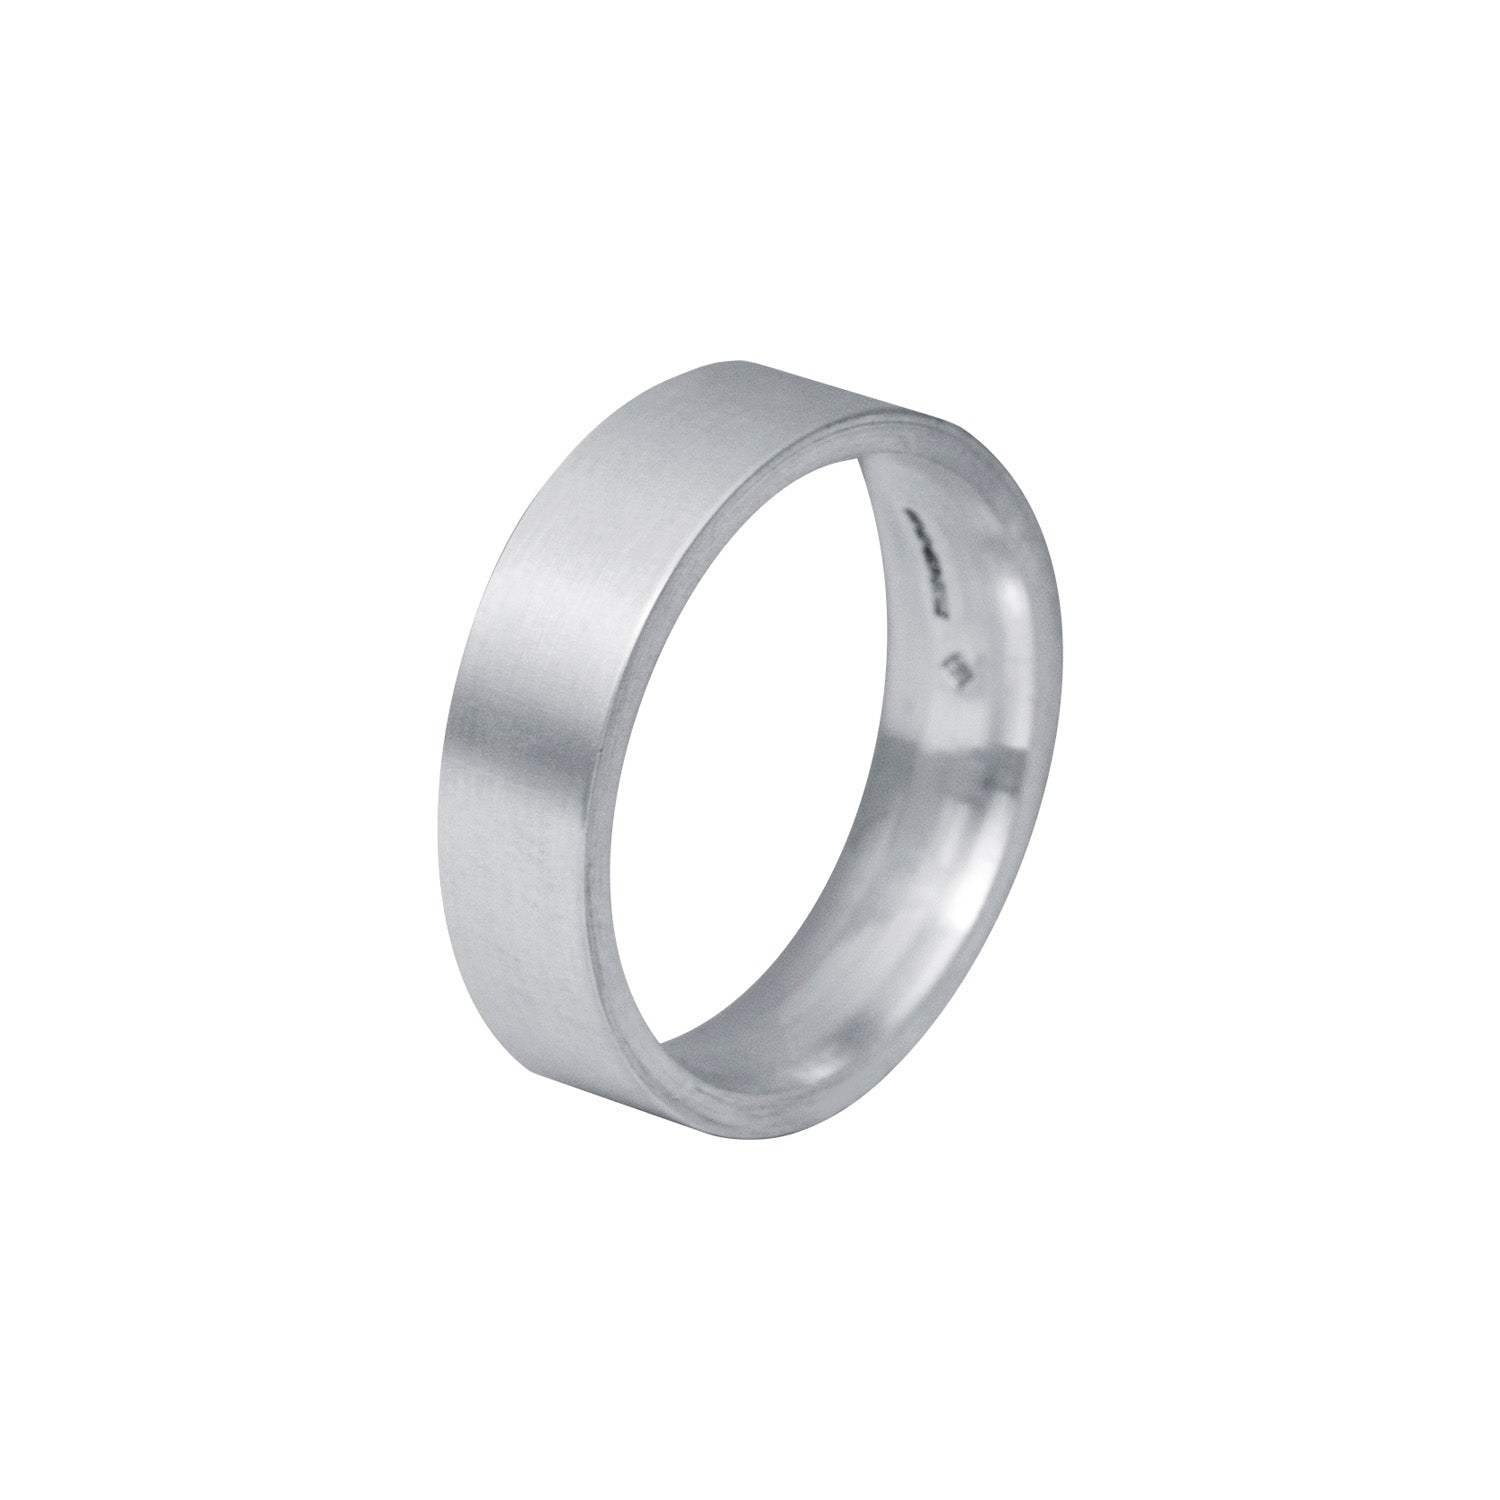 Edge Only Flat Matt 6 ring in sterling silver